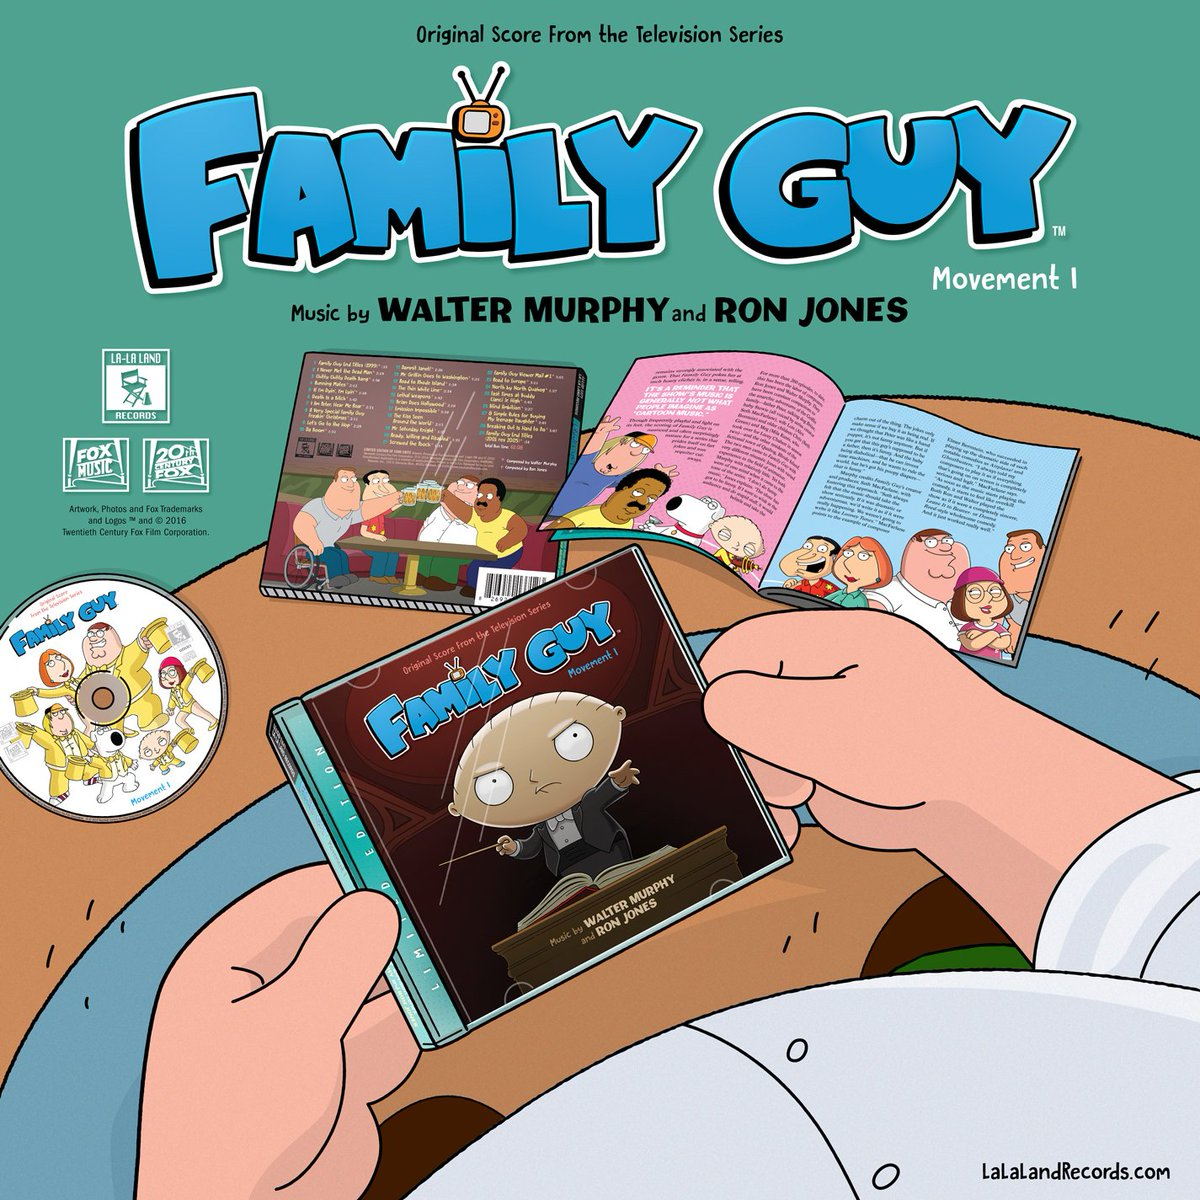 Coming 6/21 from La-La Land! Limited Edition #FamilyGuy score CD by #WalterMurphy & #RonJones @FamilyGuyonFOX https://t.co/pqCPPw2WO3